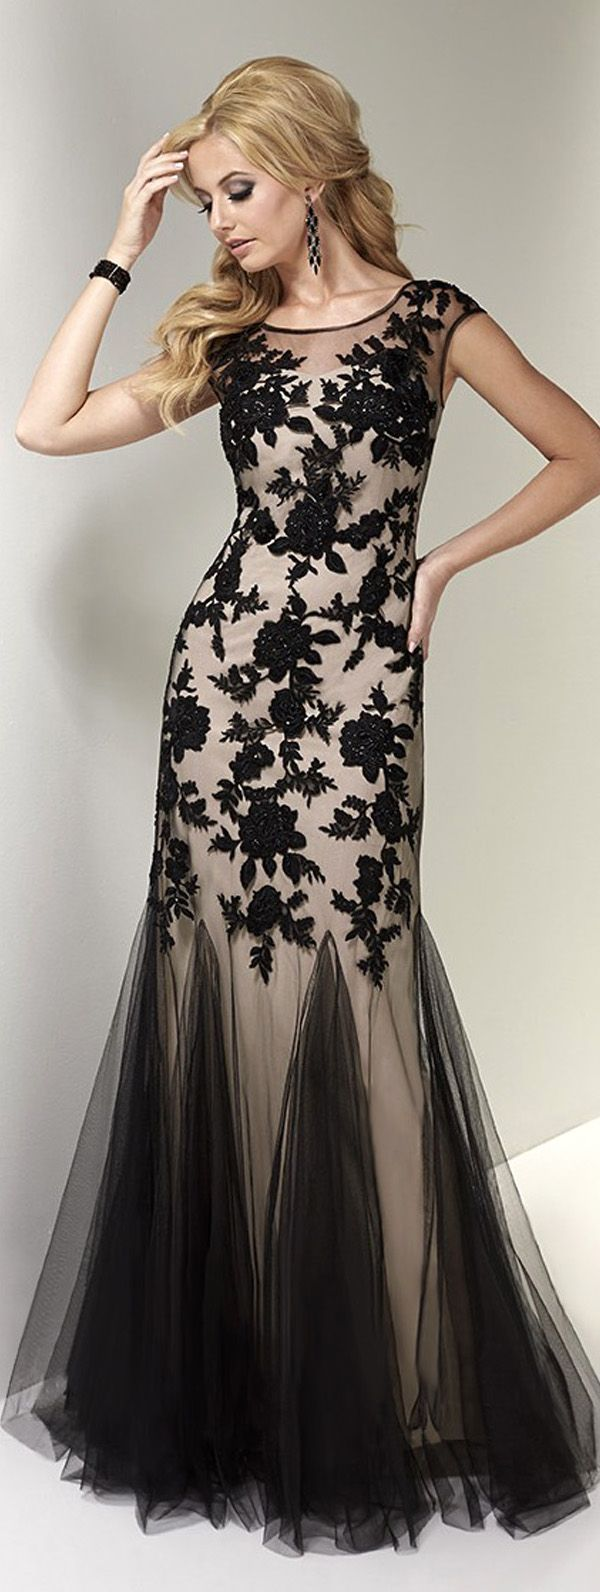 Funny dresses to wear to a wedding